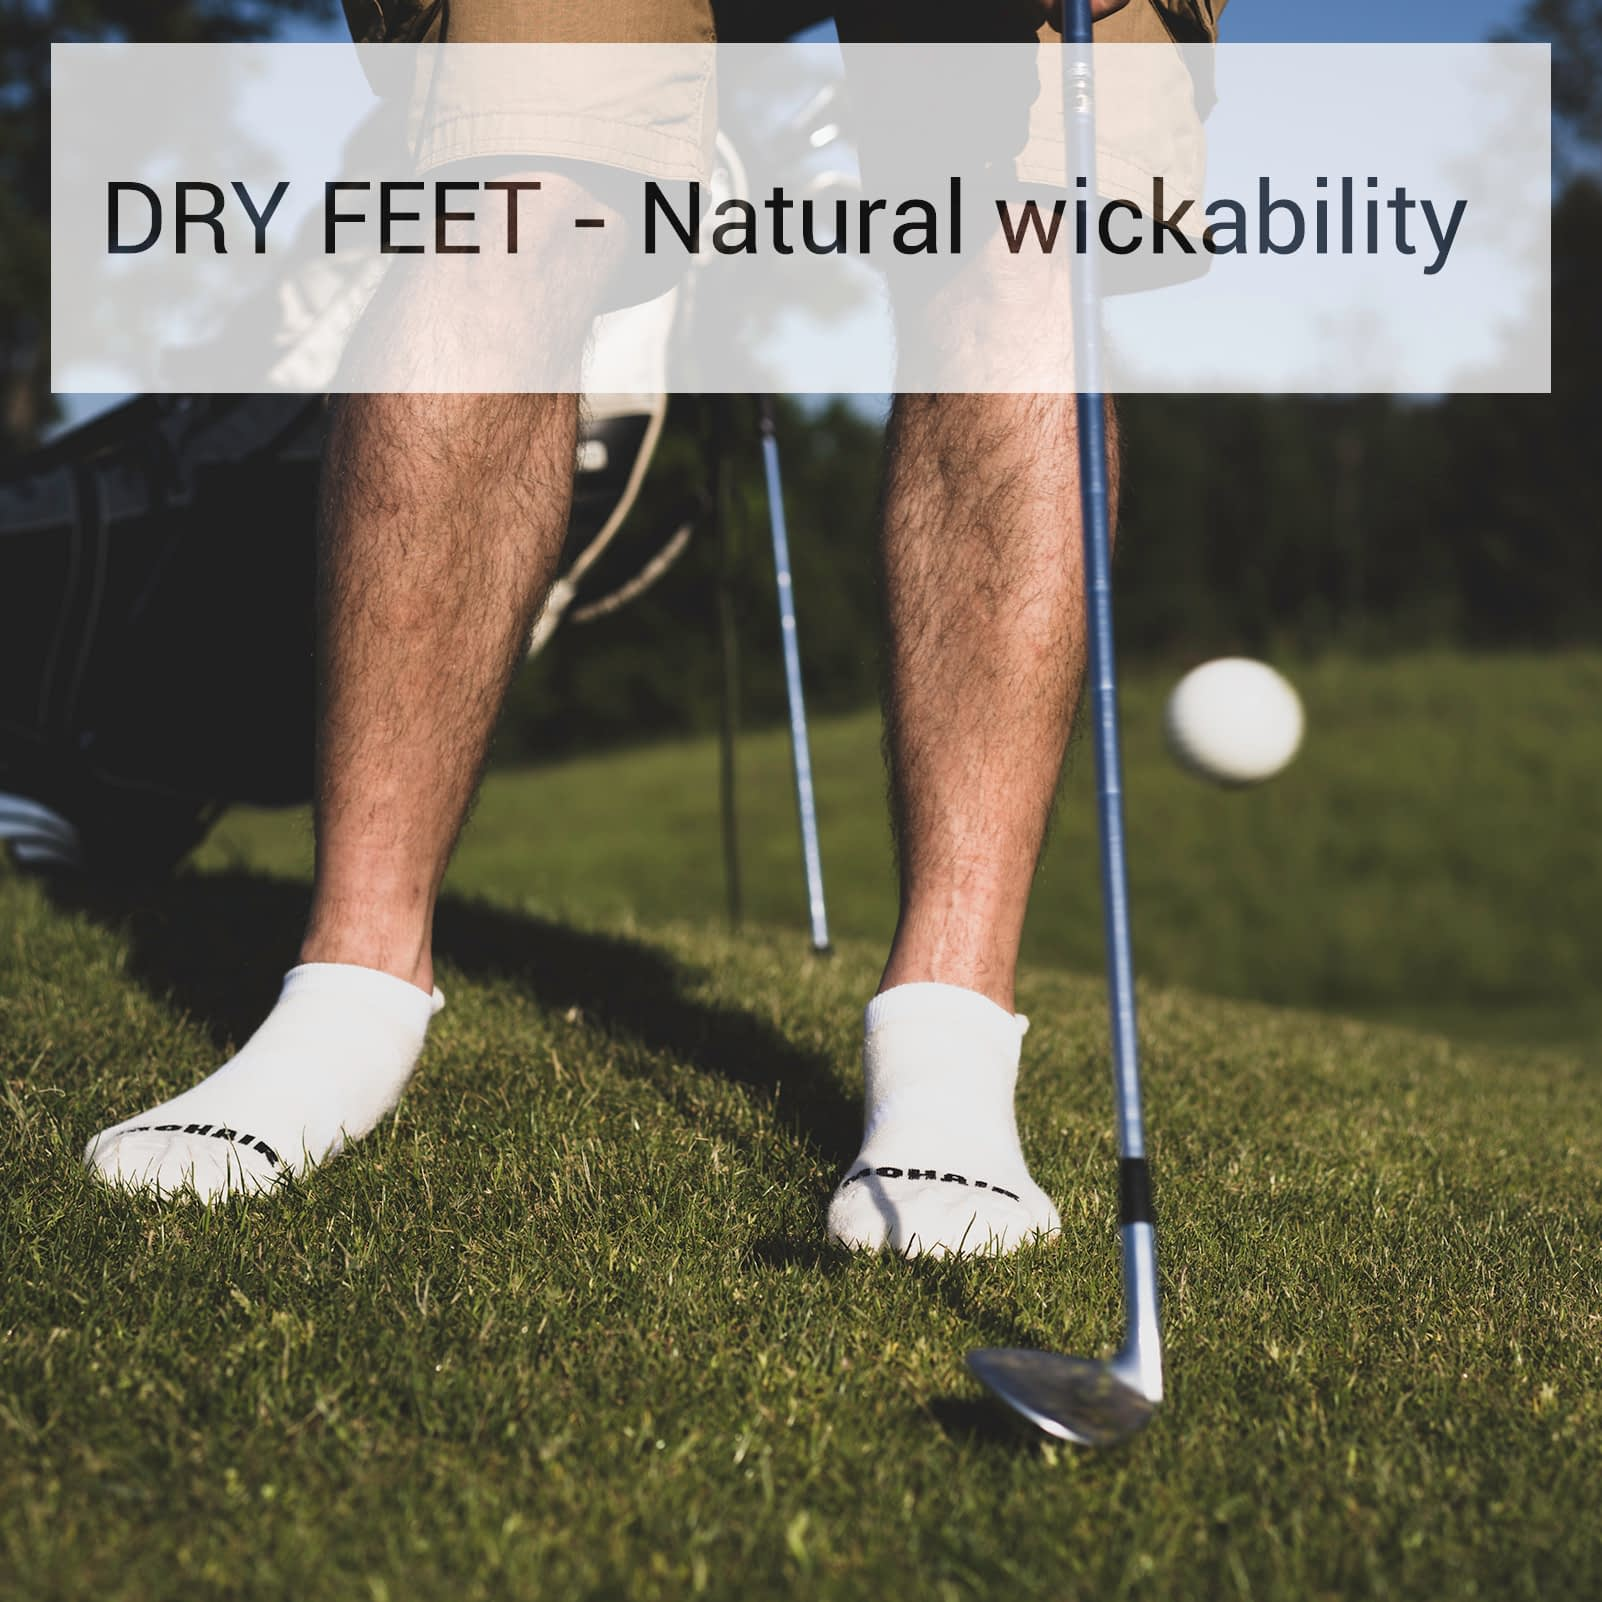 Dry Feet wickability